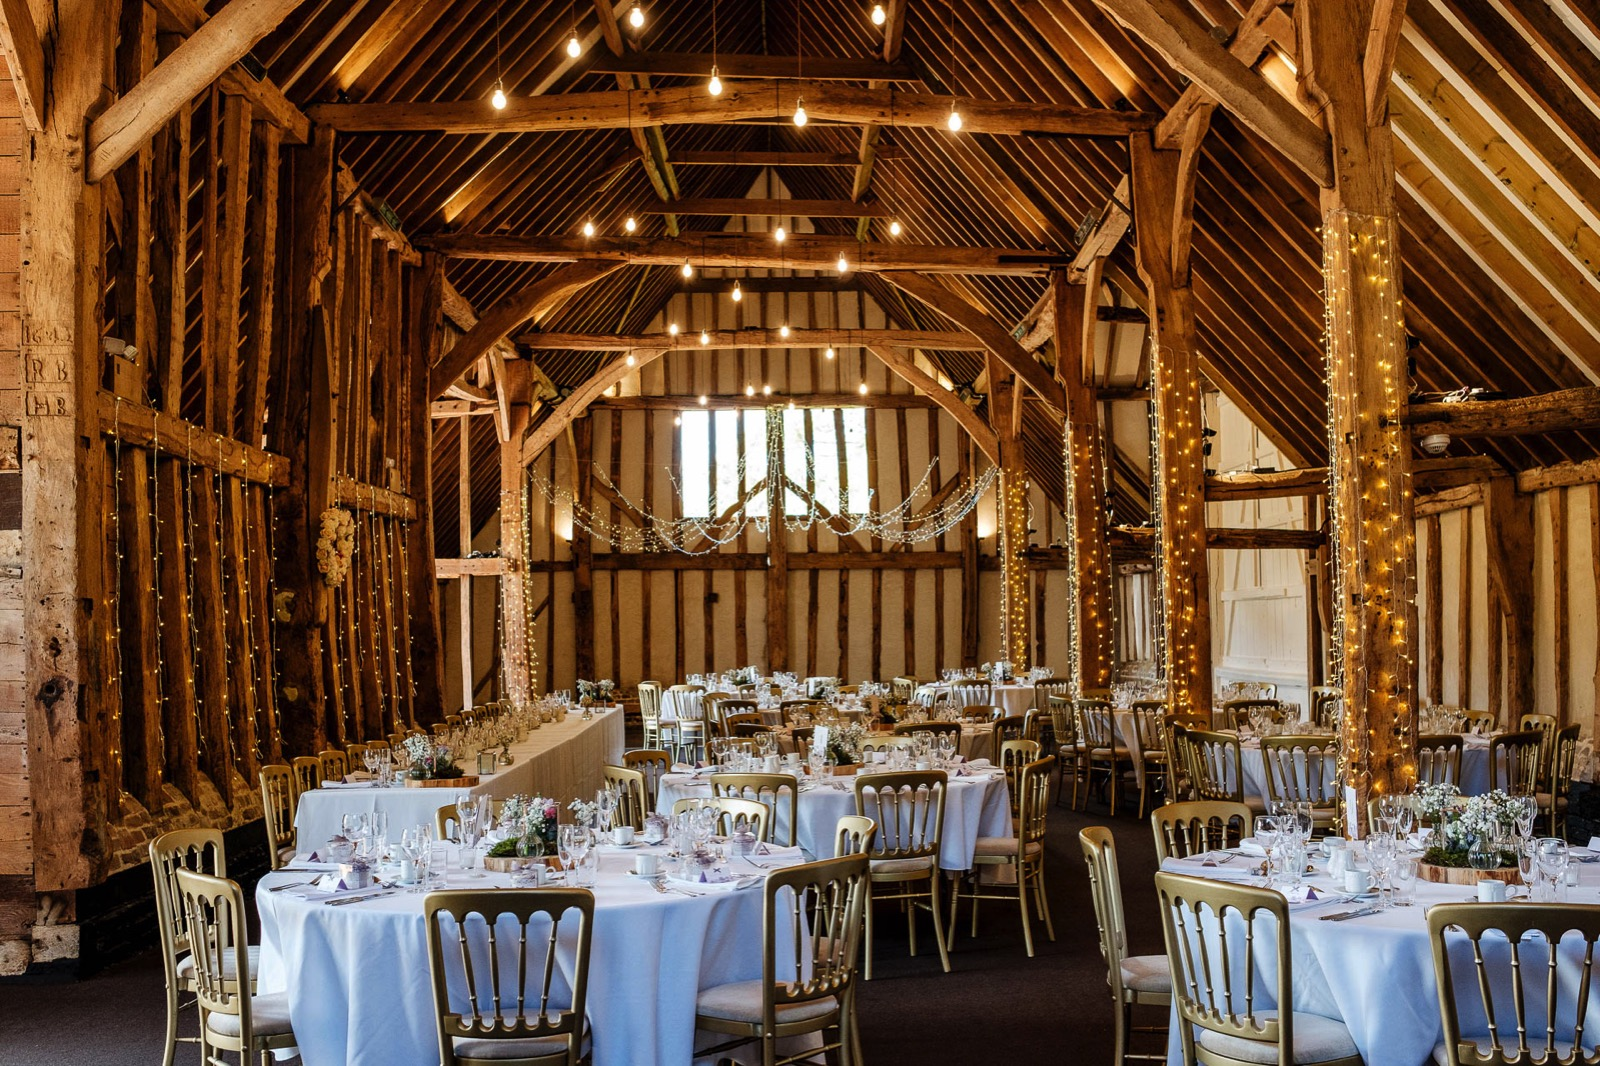 Photograph of the inside of the Barn at Wedding Venue Blake Hall in Ongar, Essex lit up with fair lights and tables with gold chairs